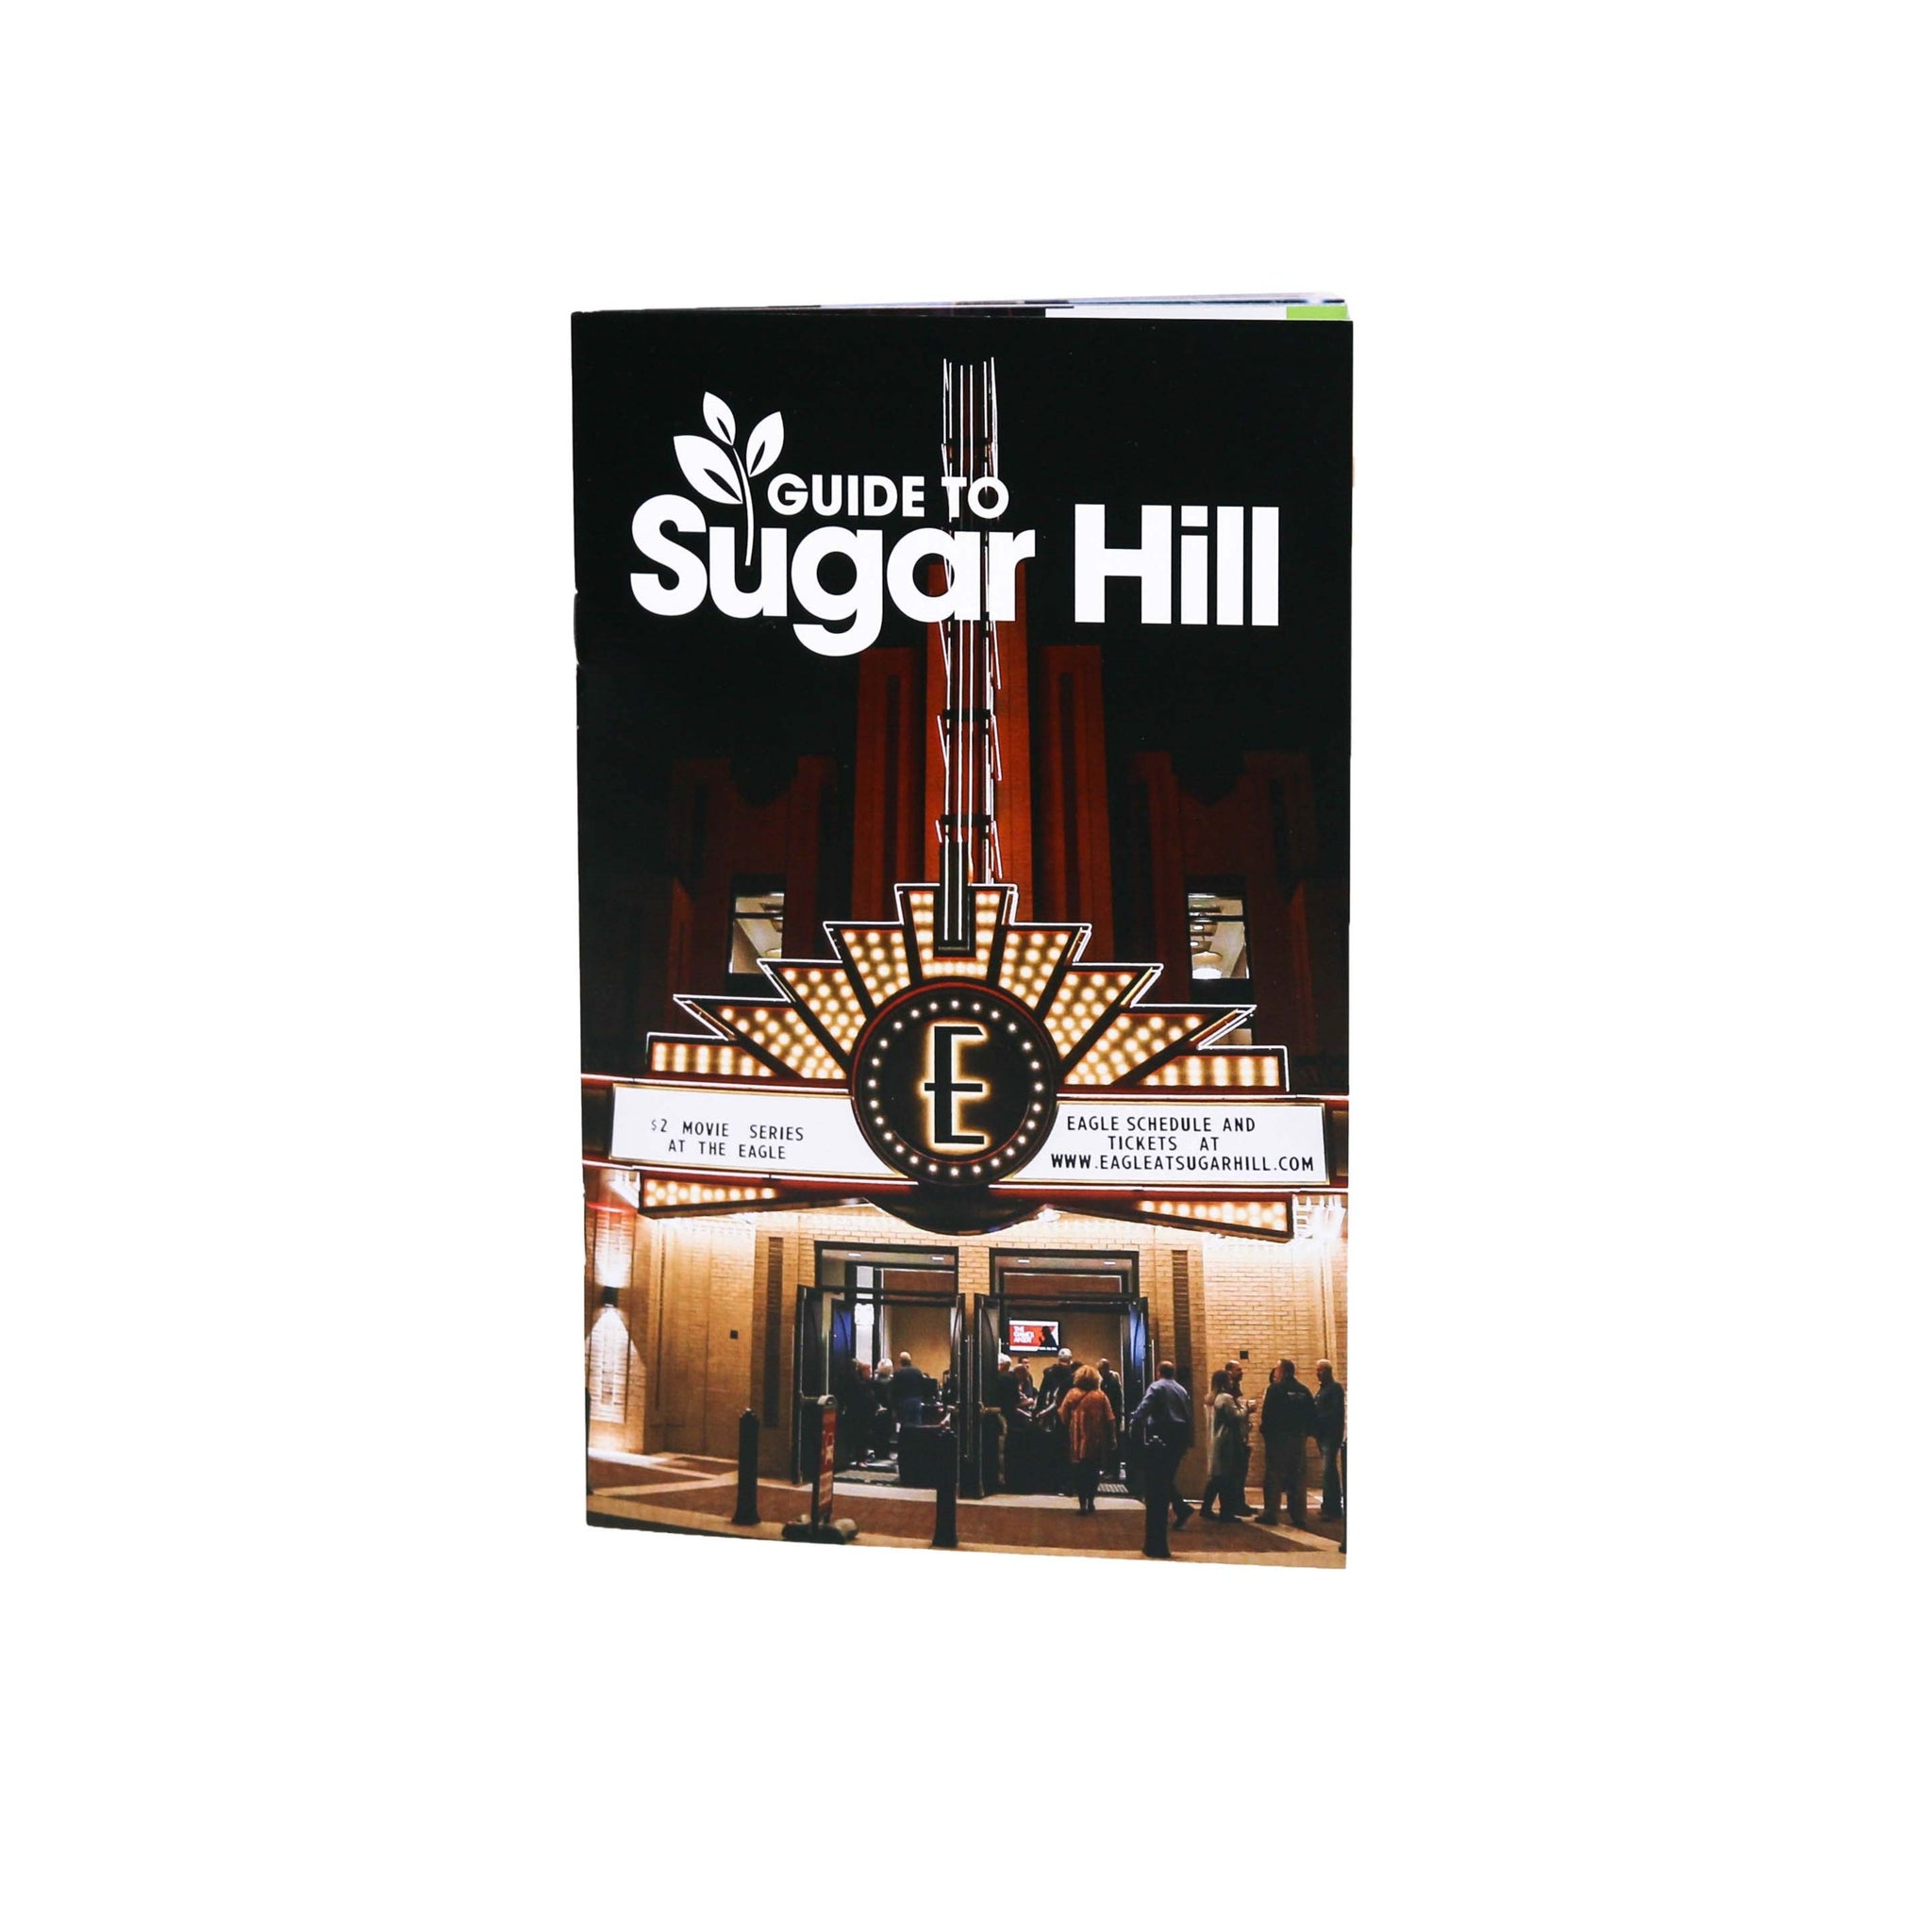 Guide to Sugar Hill